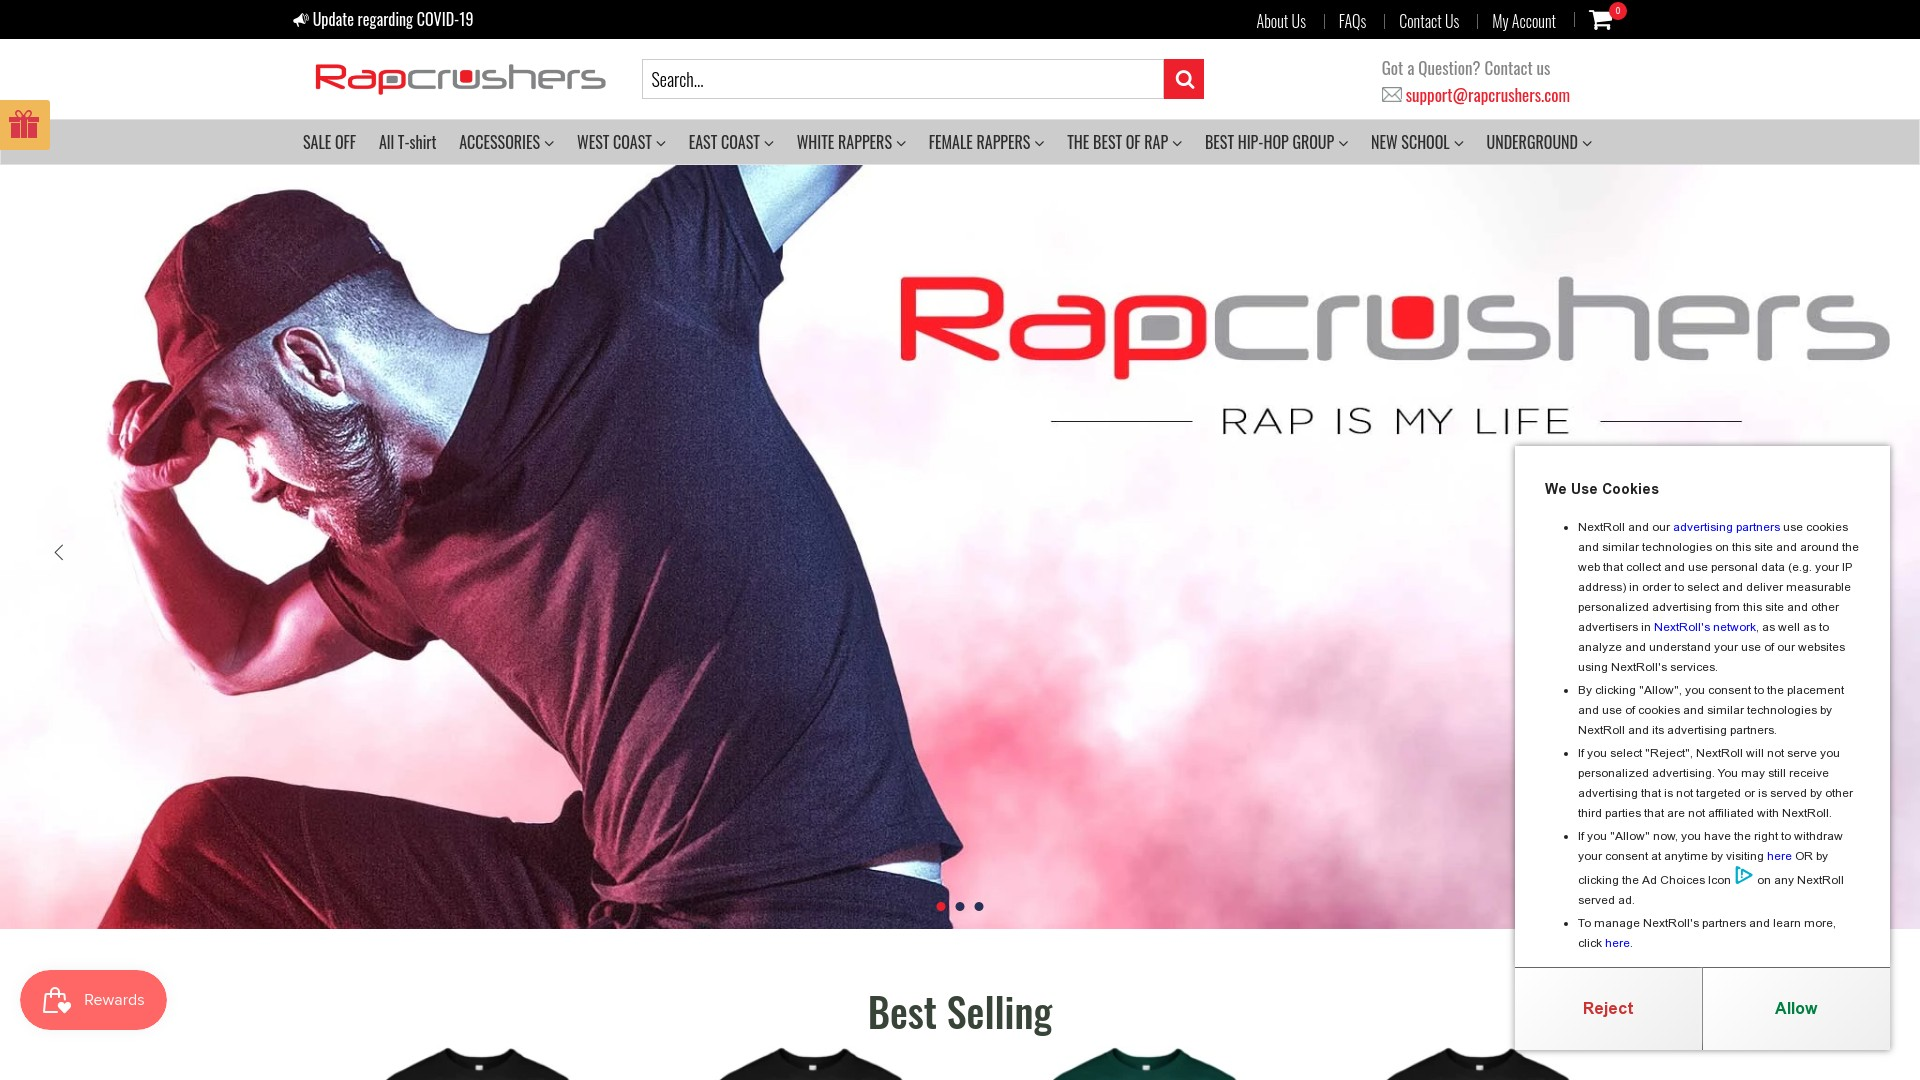 Is Rapcrushers a Scam? Review of the Online Store